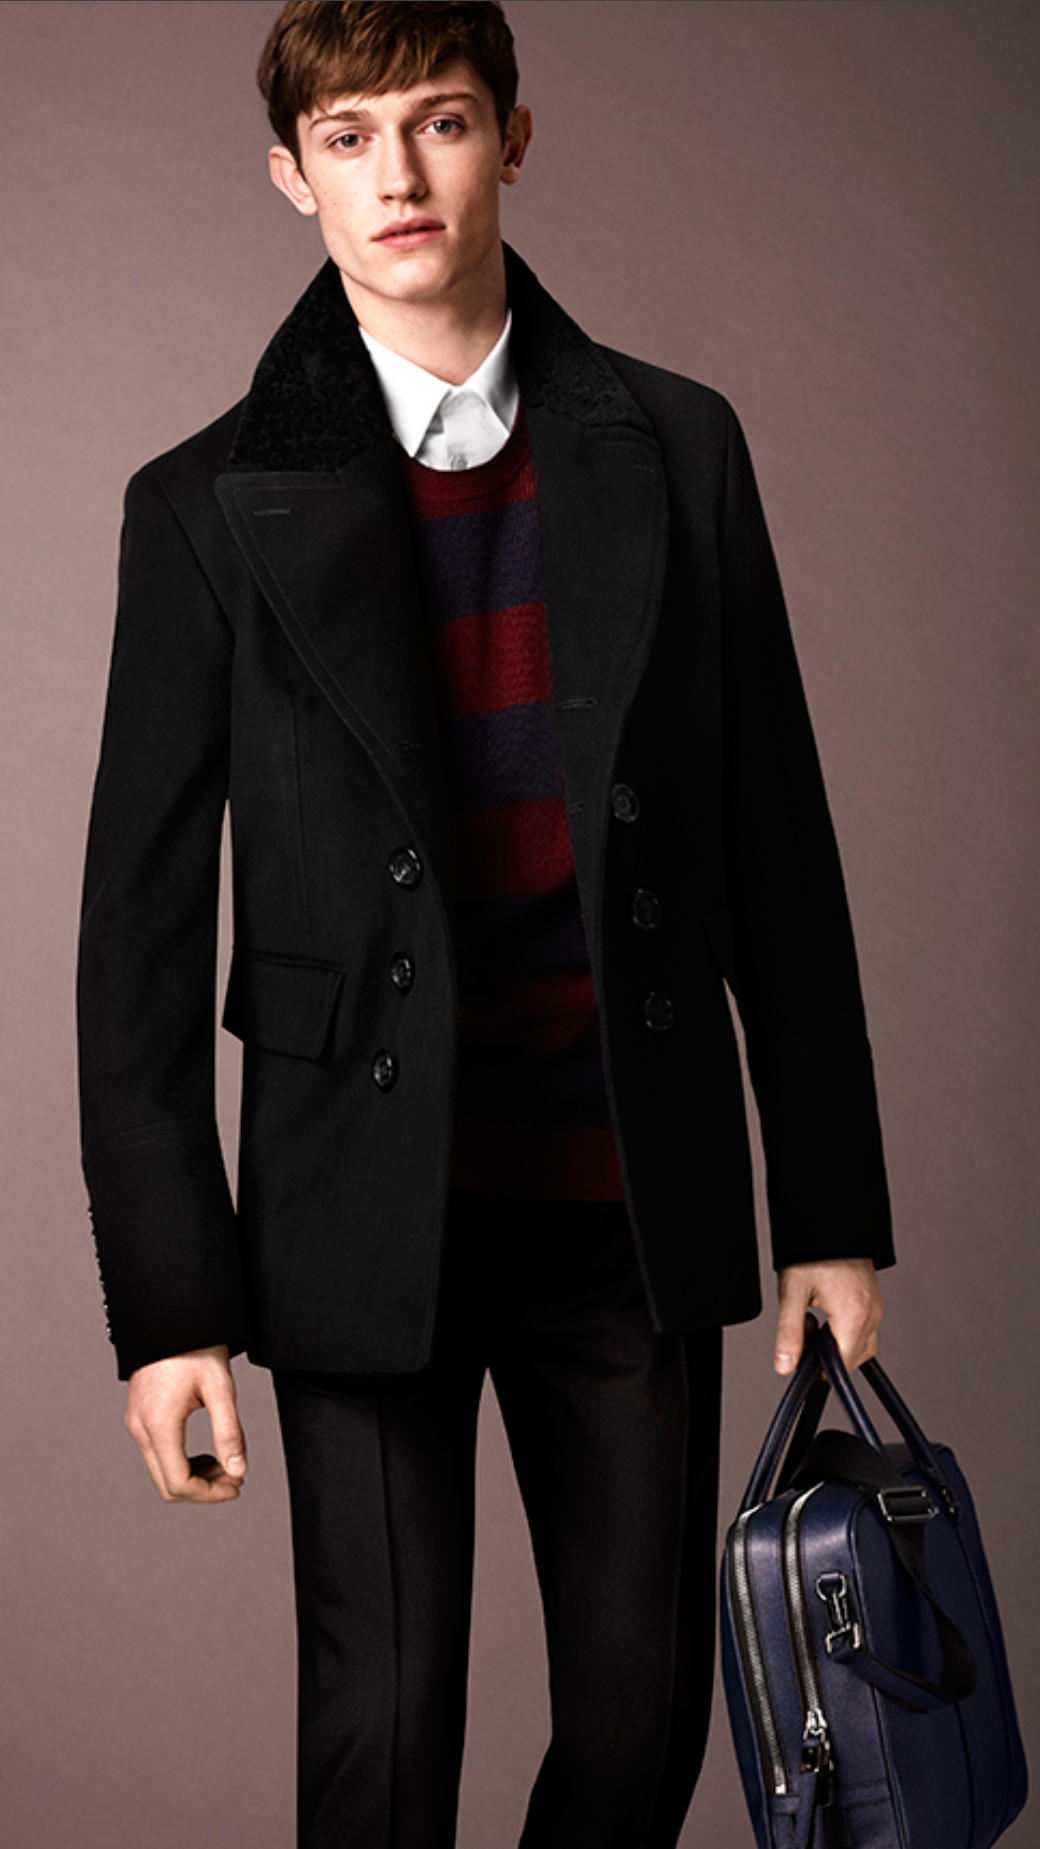 Images of Pea Coat Burberry - Watch Out, There's a Clothes About